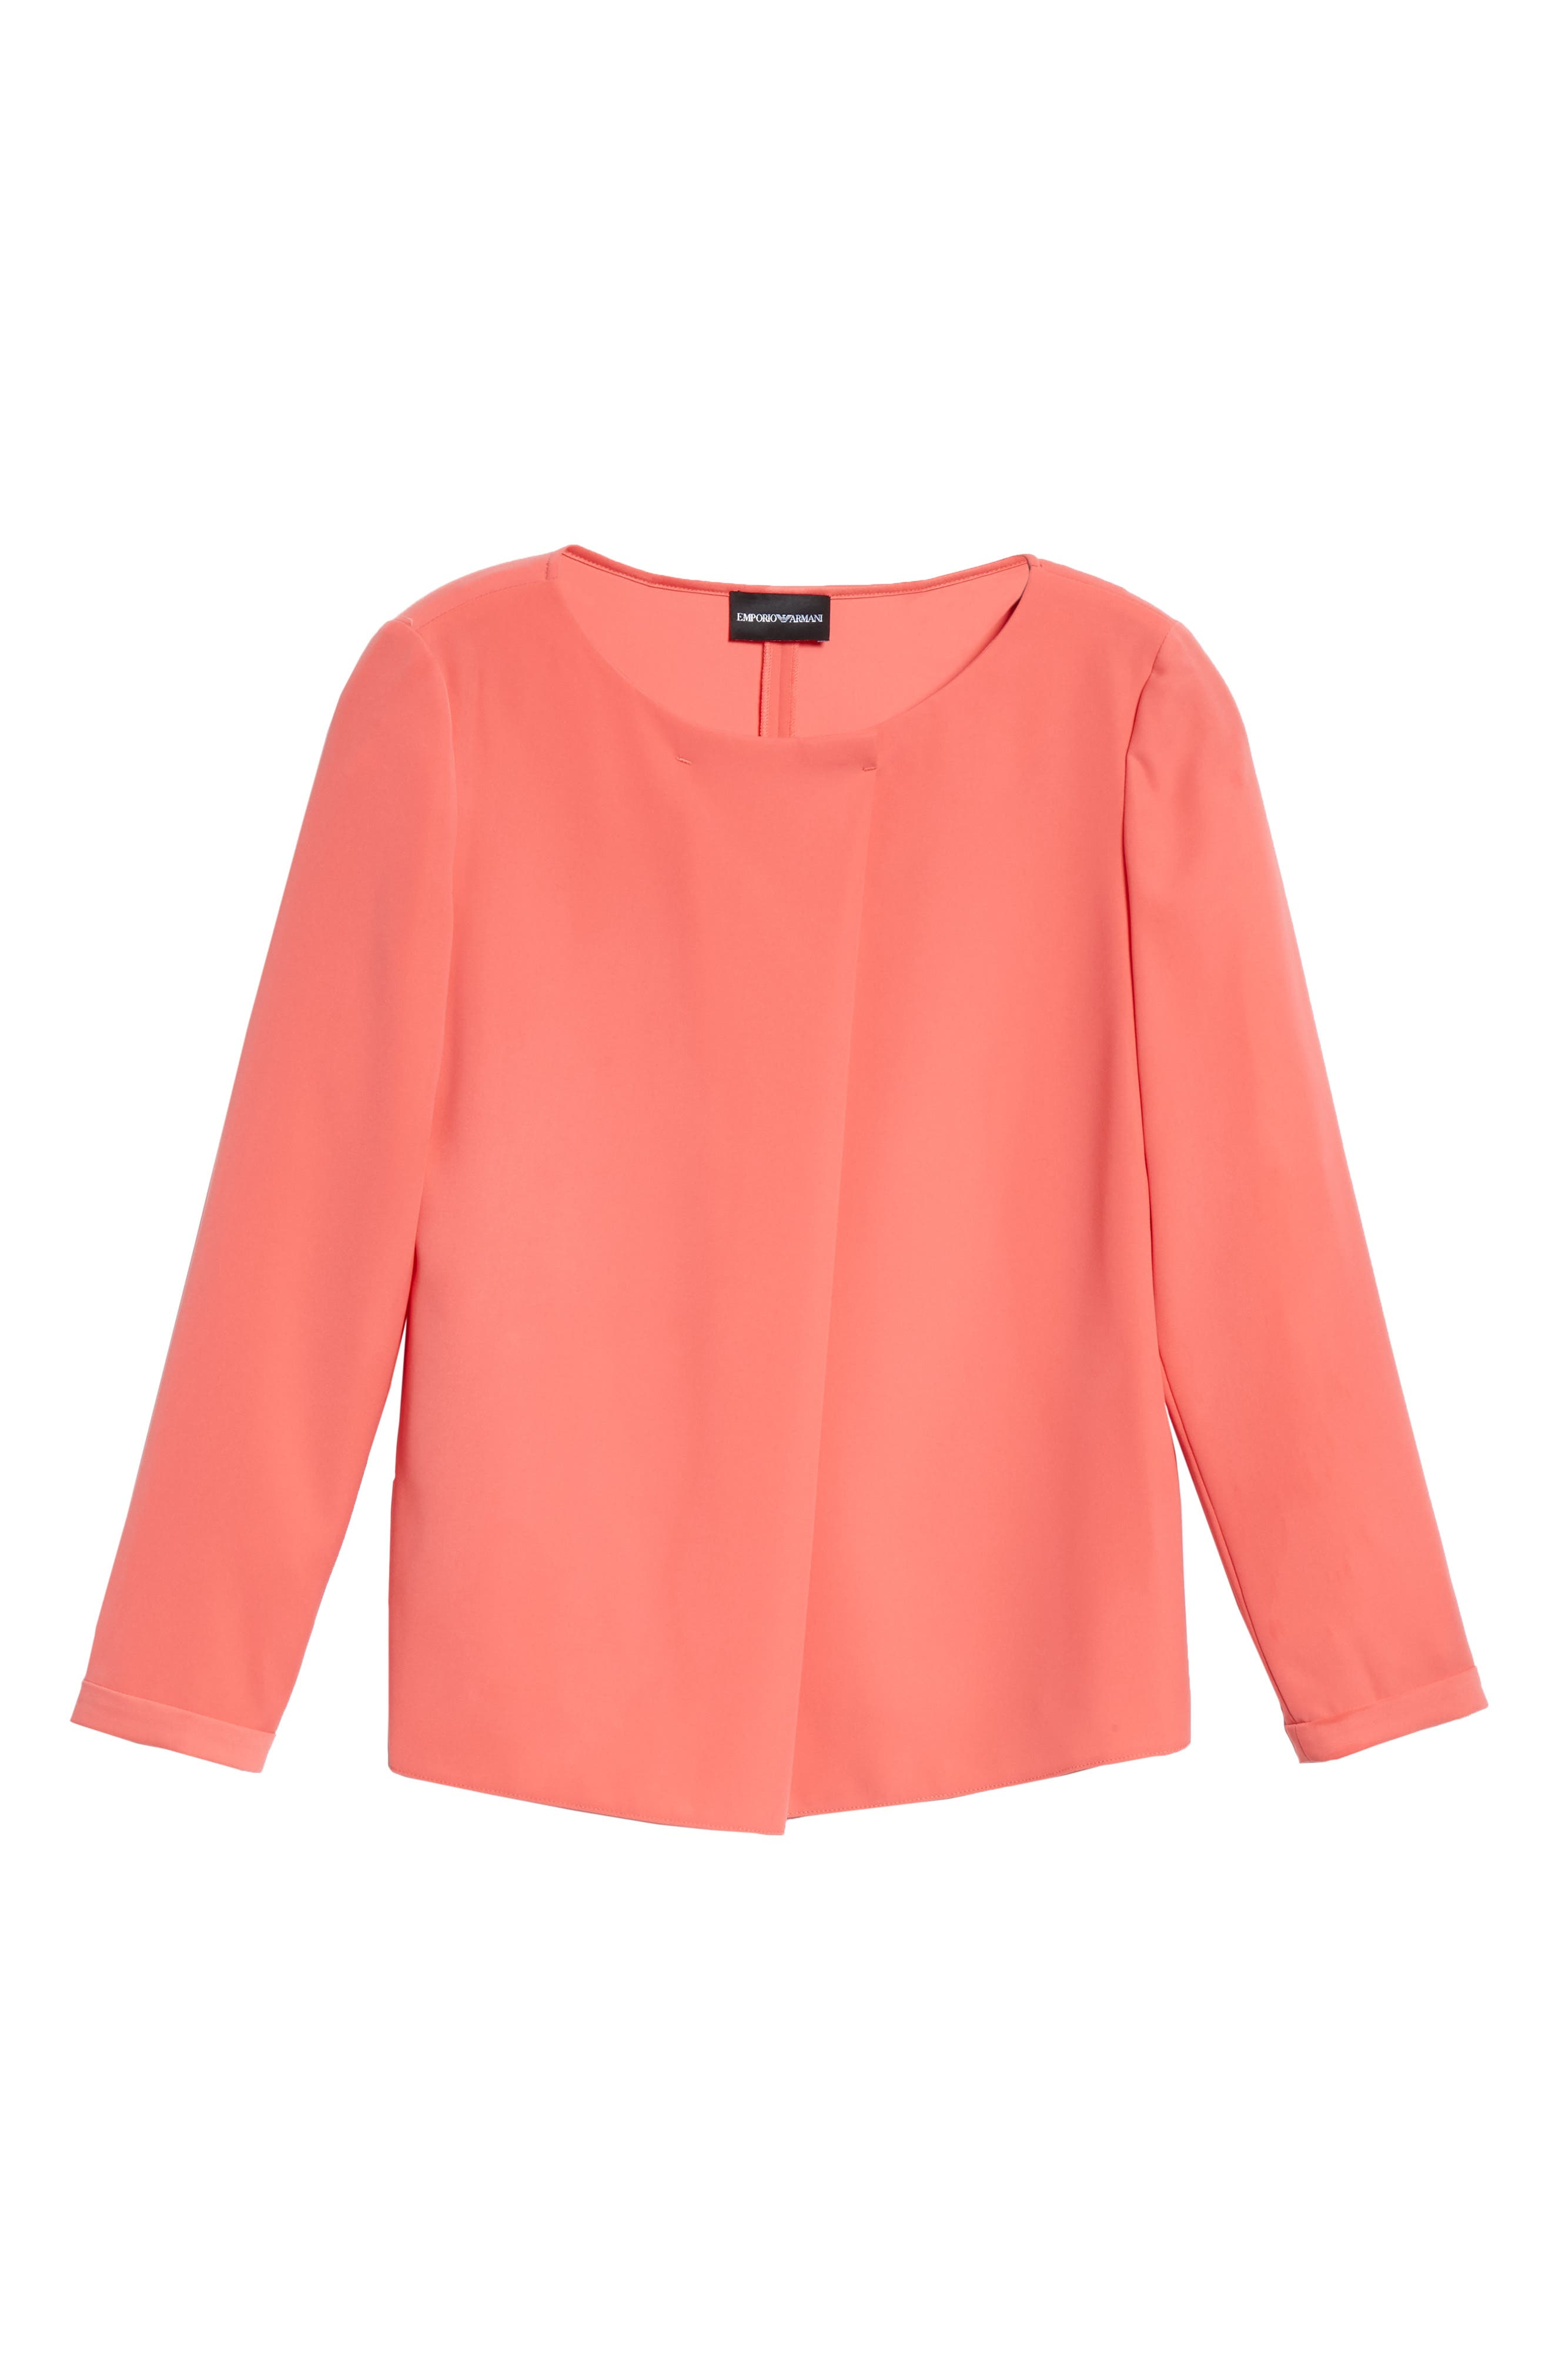 EMPORIO ARMANI,                             Asymmetrical Blouse,                             Alternate thumbnail 6, color,                             SUNRISE RED